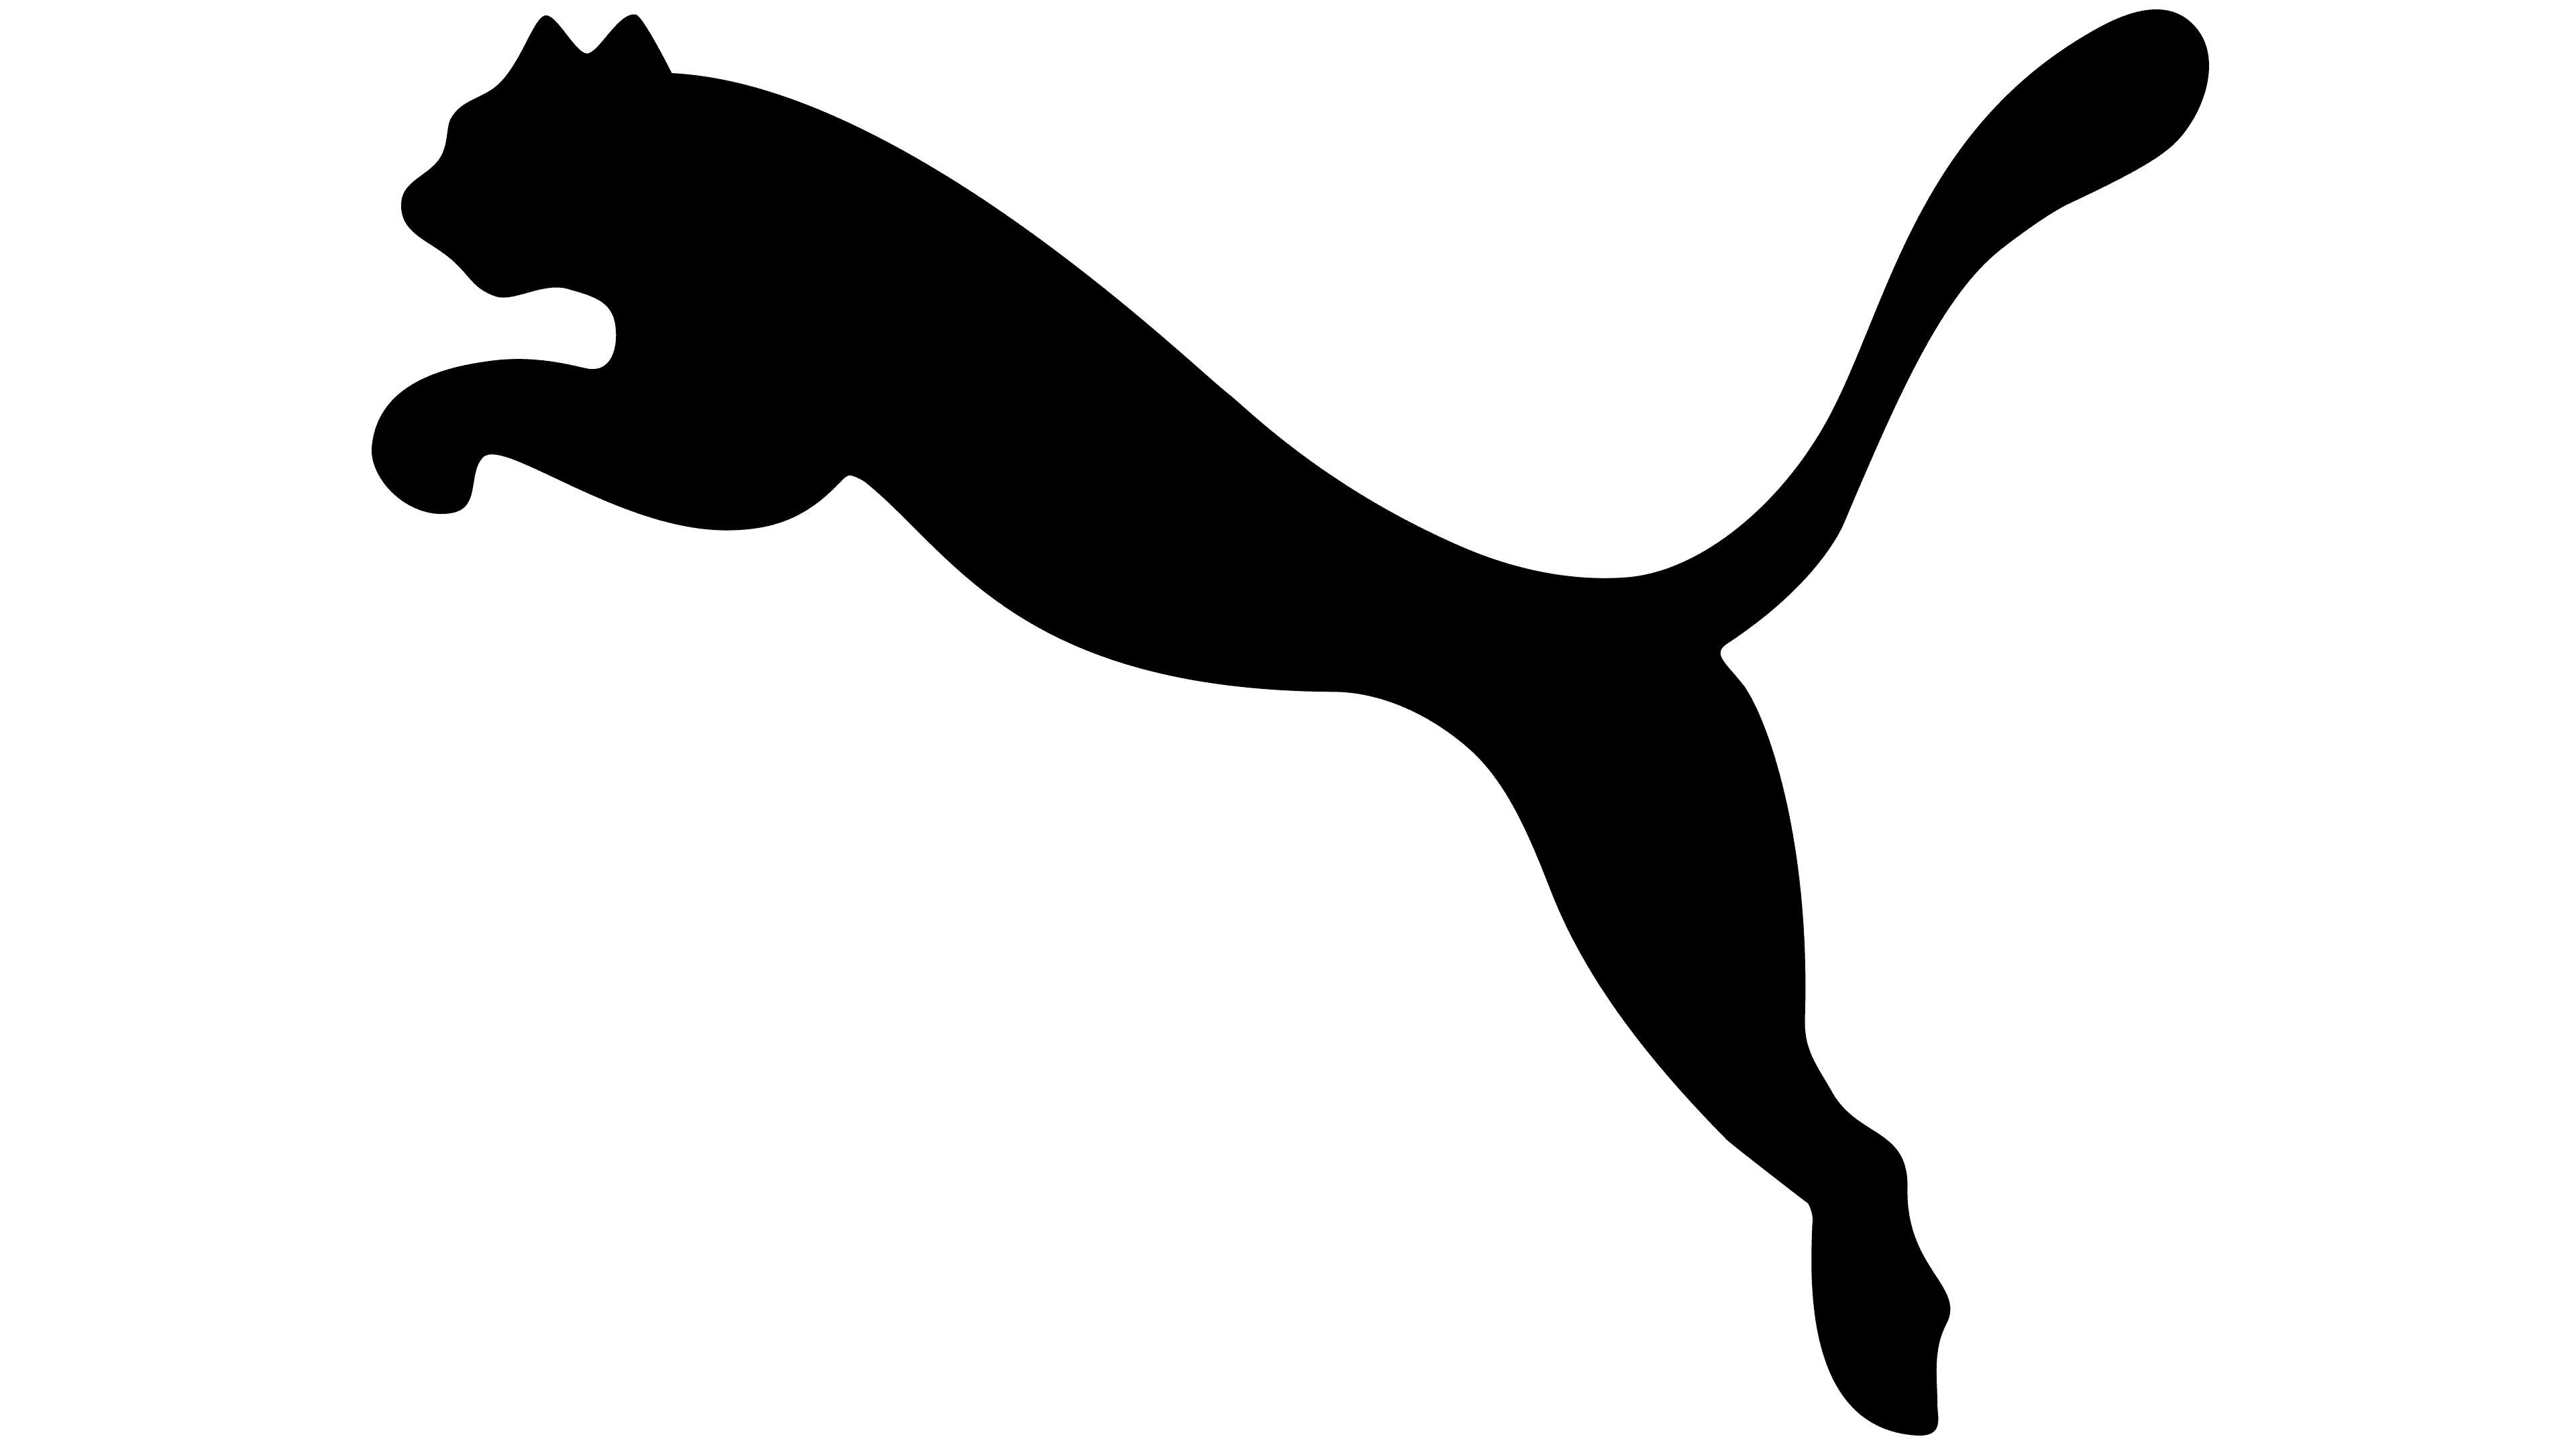 Puma Logo | The most famous brands and